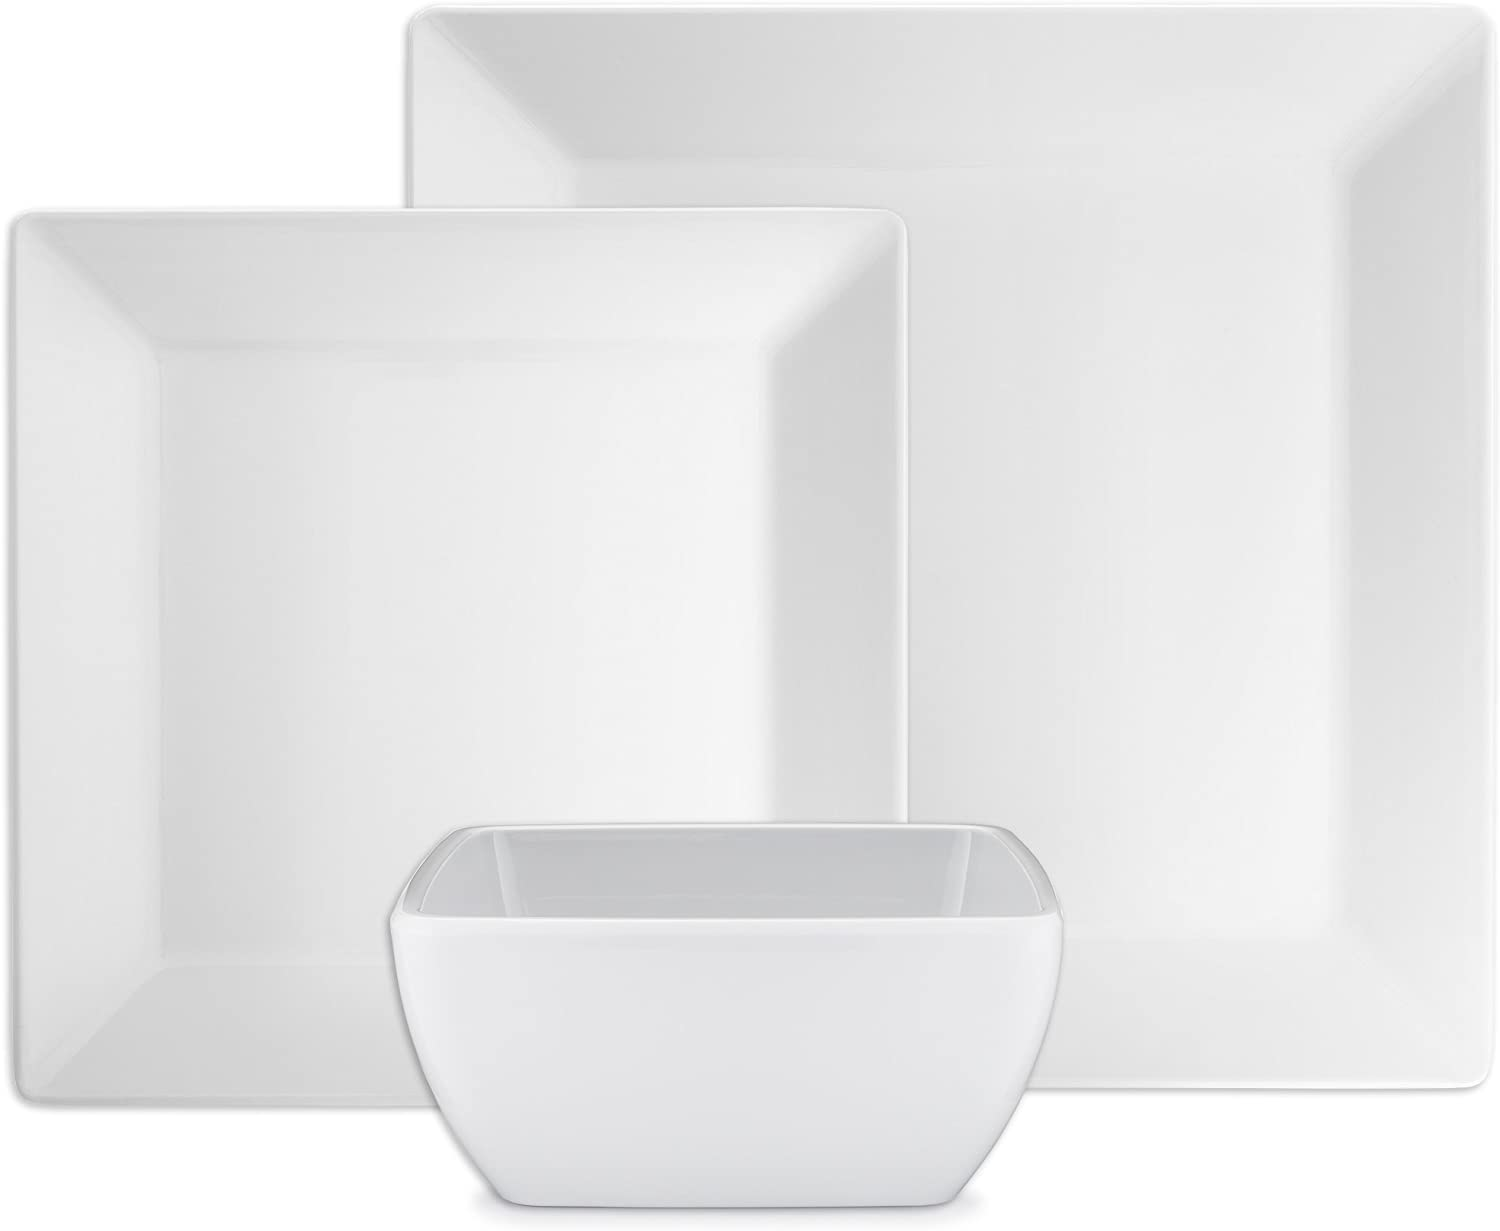 Q Squared Diamond White Collection Square 12-Piece Professional Grade, BPA-Free, Shatterproof, Melamine Dinnerware Set, Many Collection Options